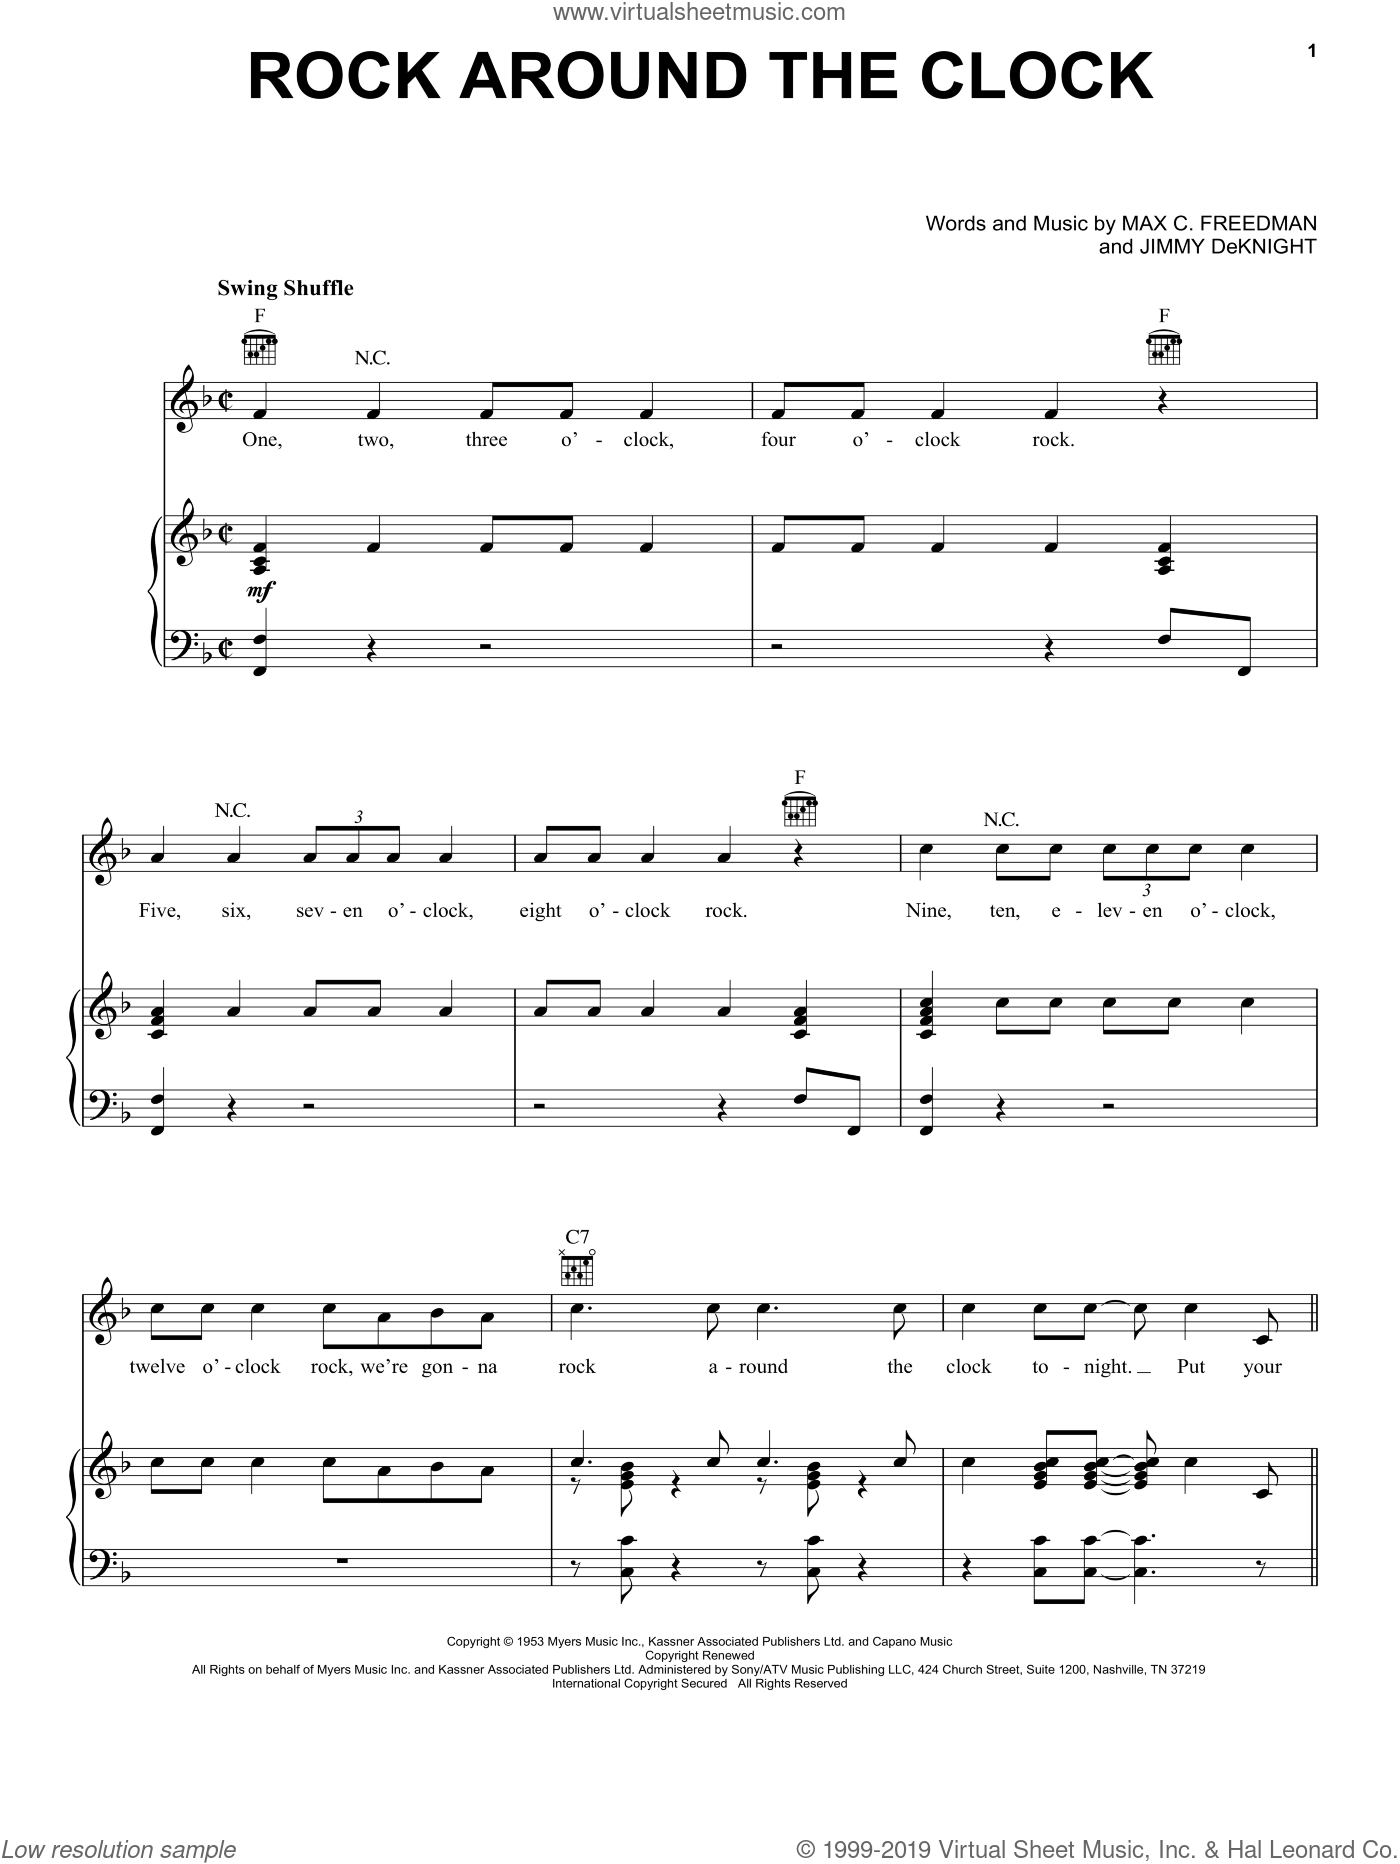 Rock Around The Clock sheet music for voice, piano or guitar by Max C. Freedman